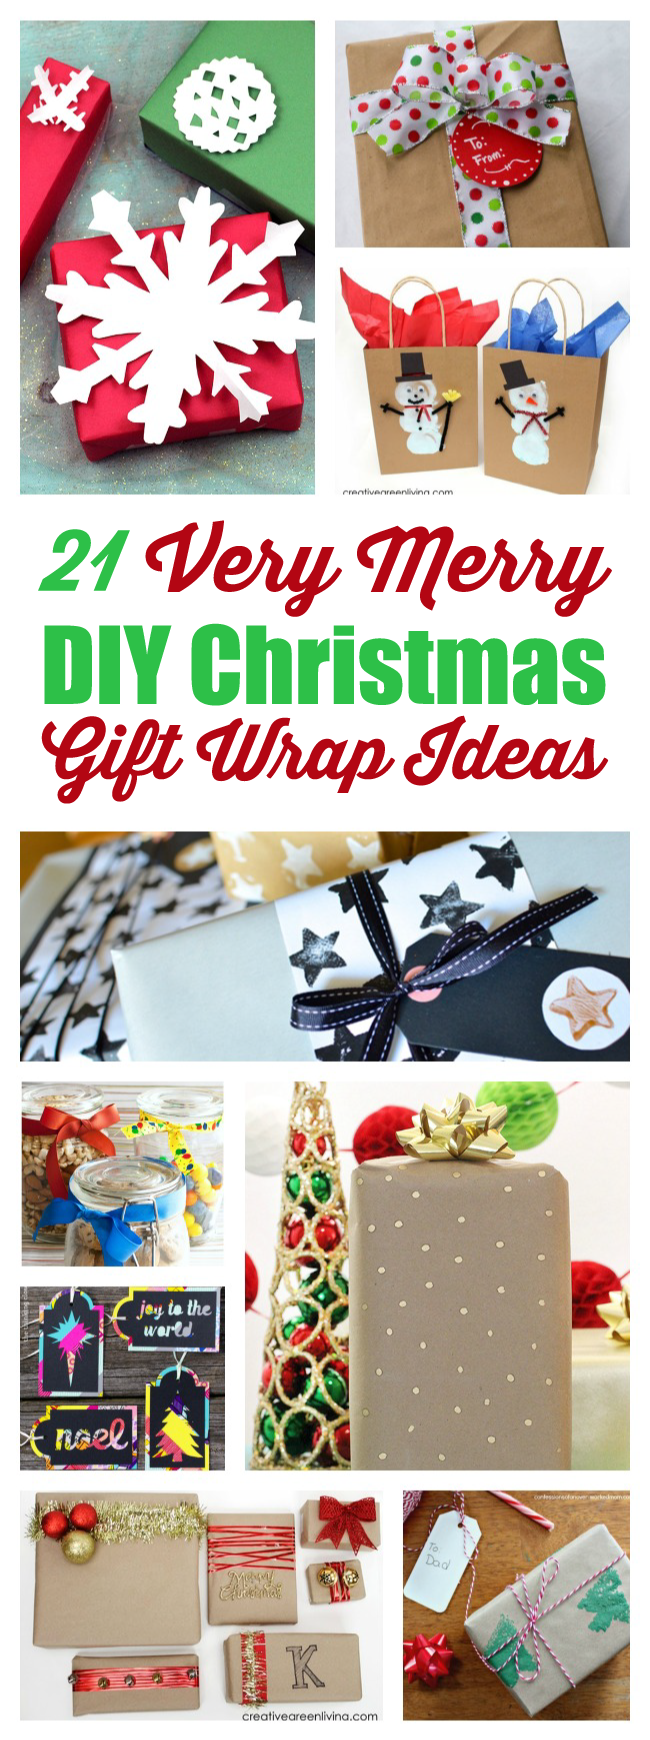 Love the idea of making my own wrapping paper, makes gifts even more thoughtful. It's so much easier than it sounds too. Bonus!